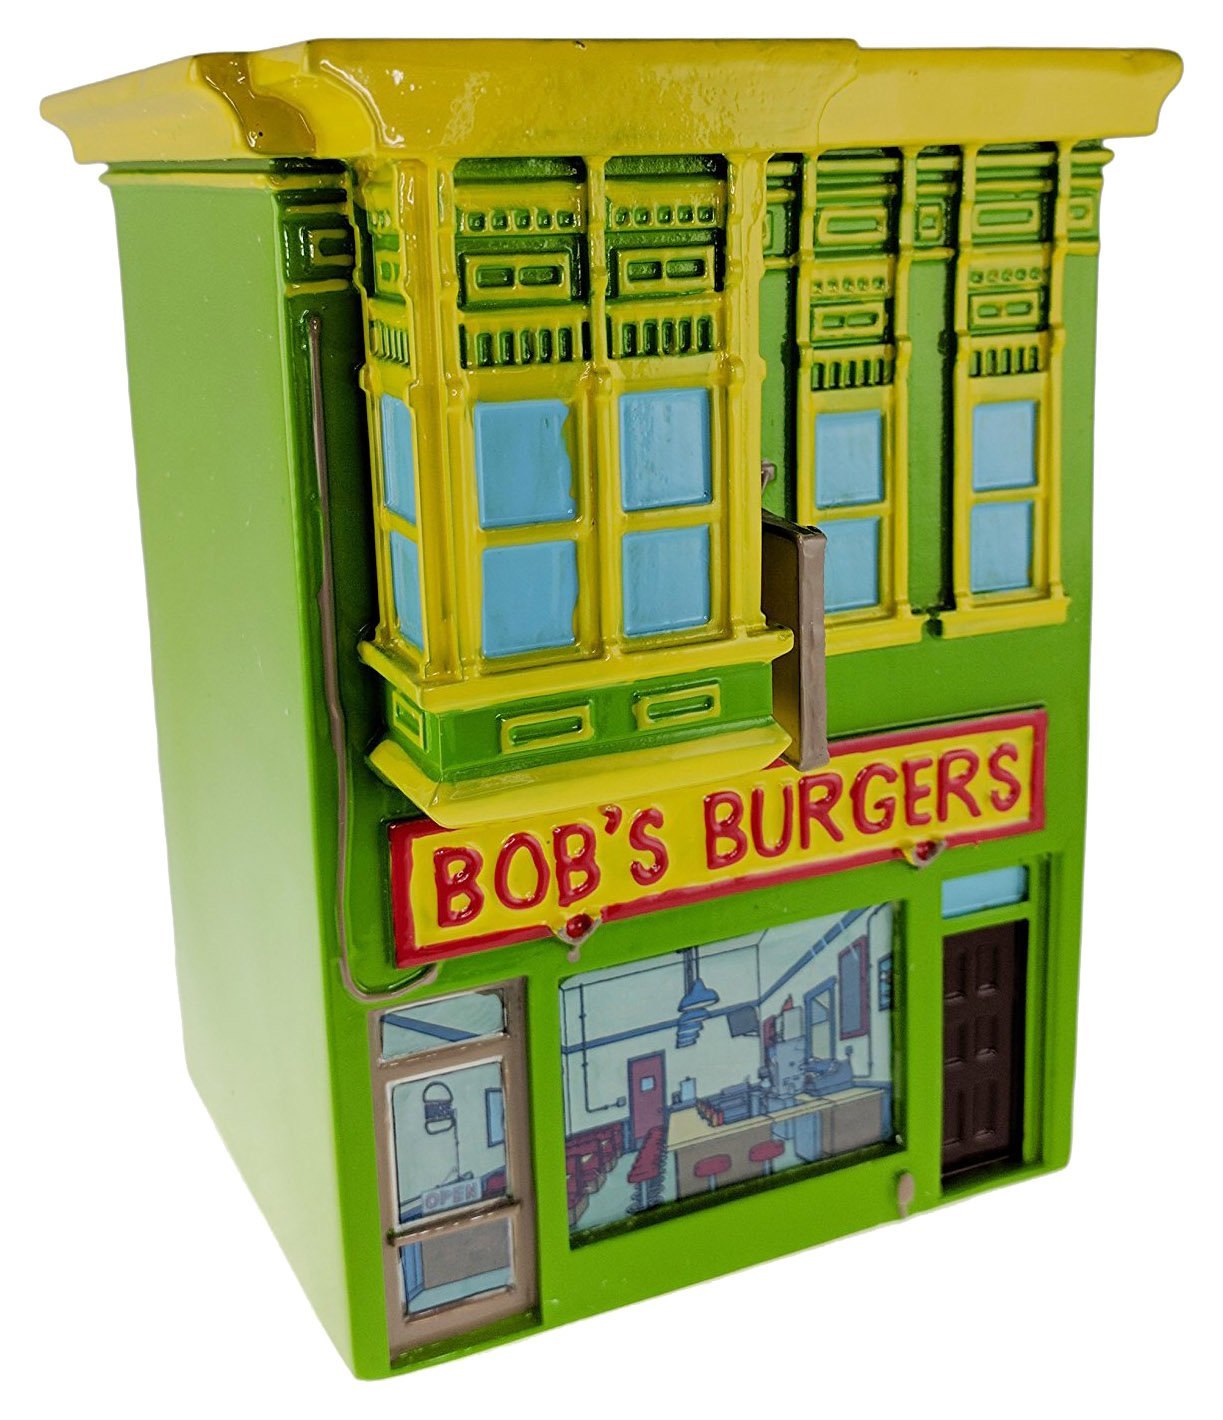 Bob's Burgers Officially Licensed Restaurant Coin, Piggy Bank Bob' s Burgers CB-BOB-REST